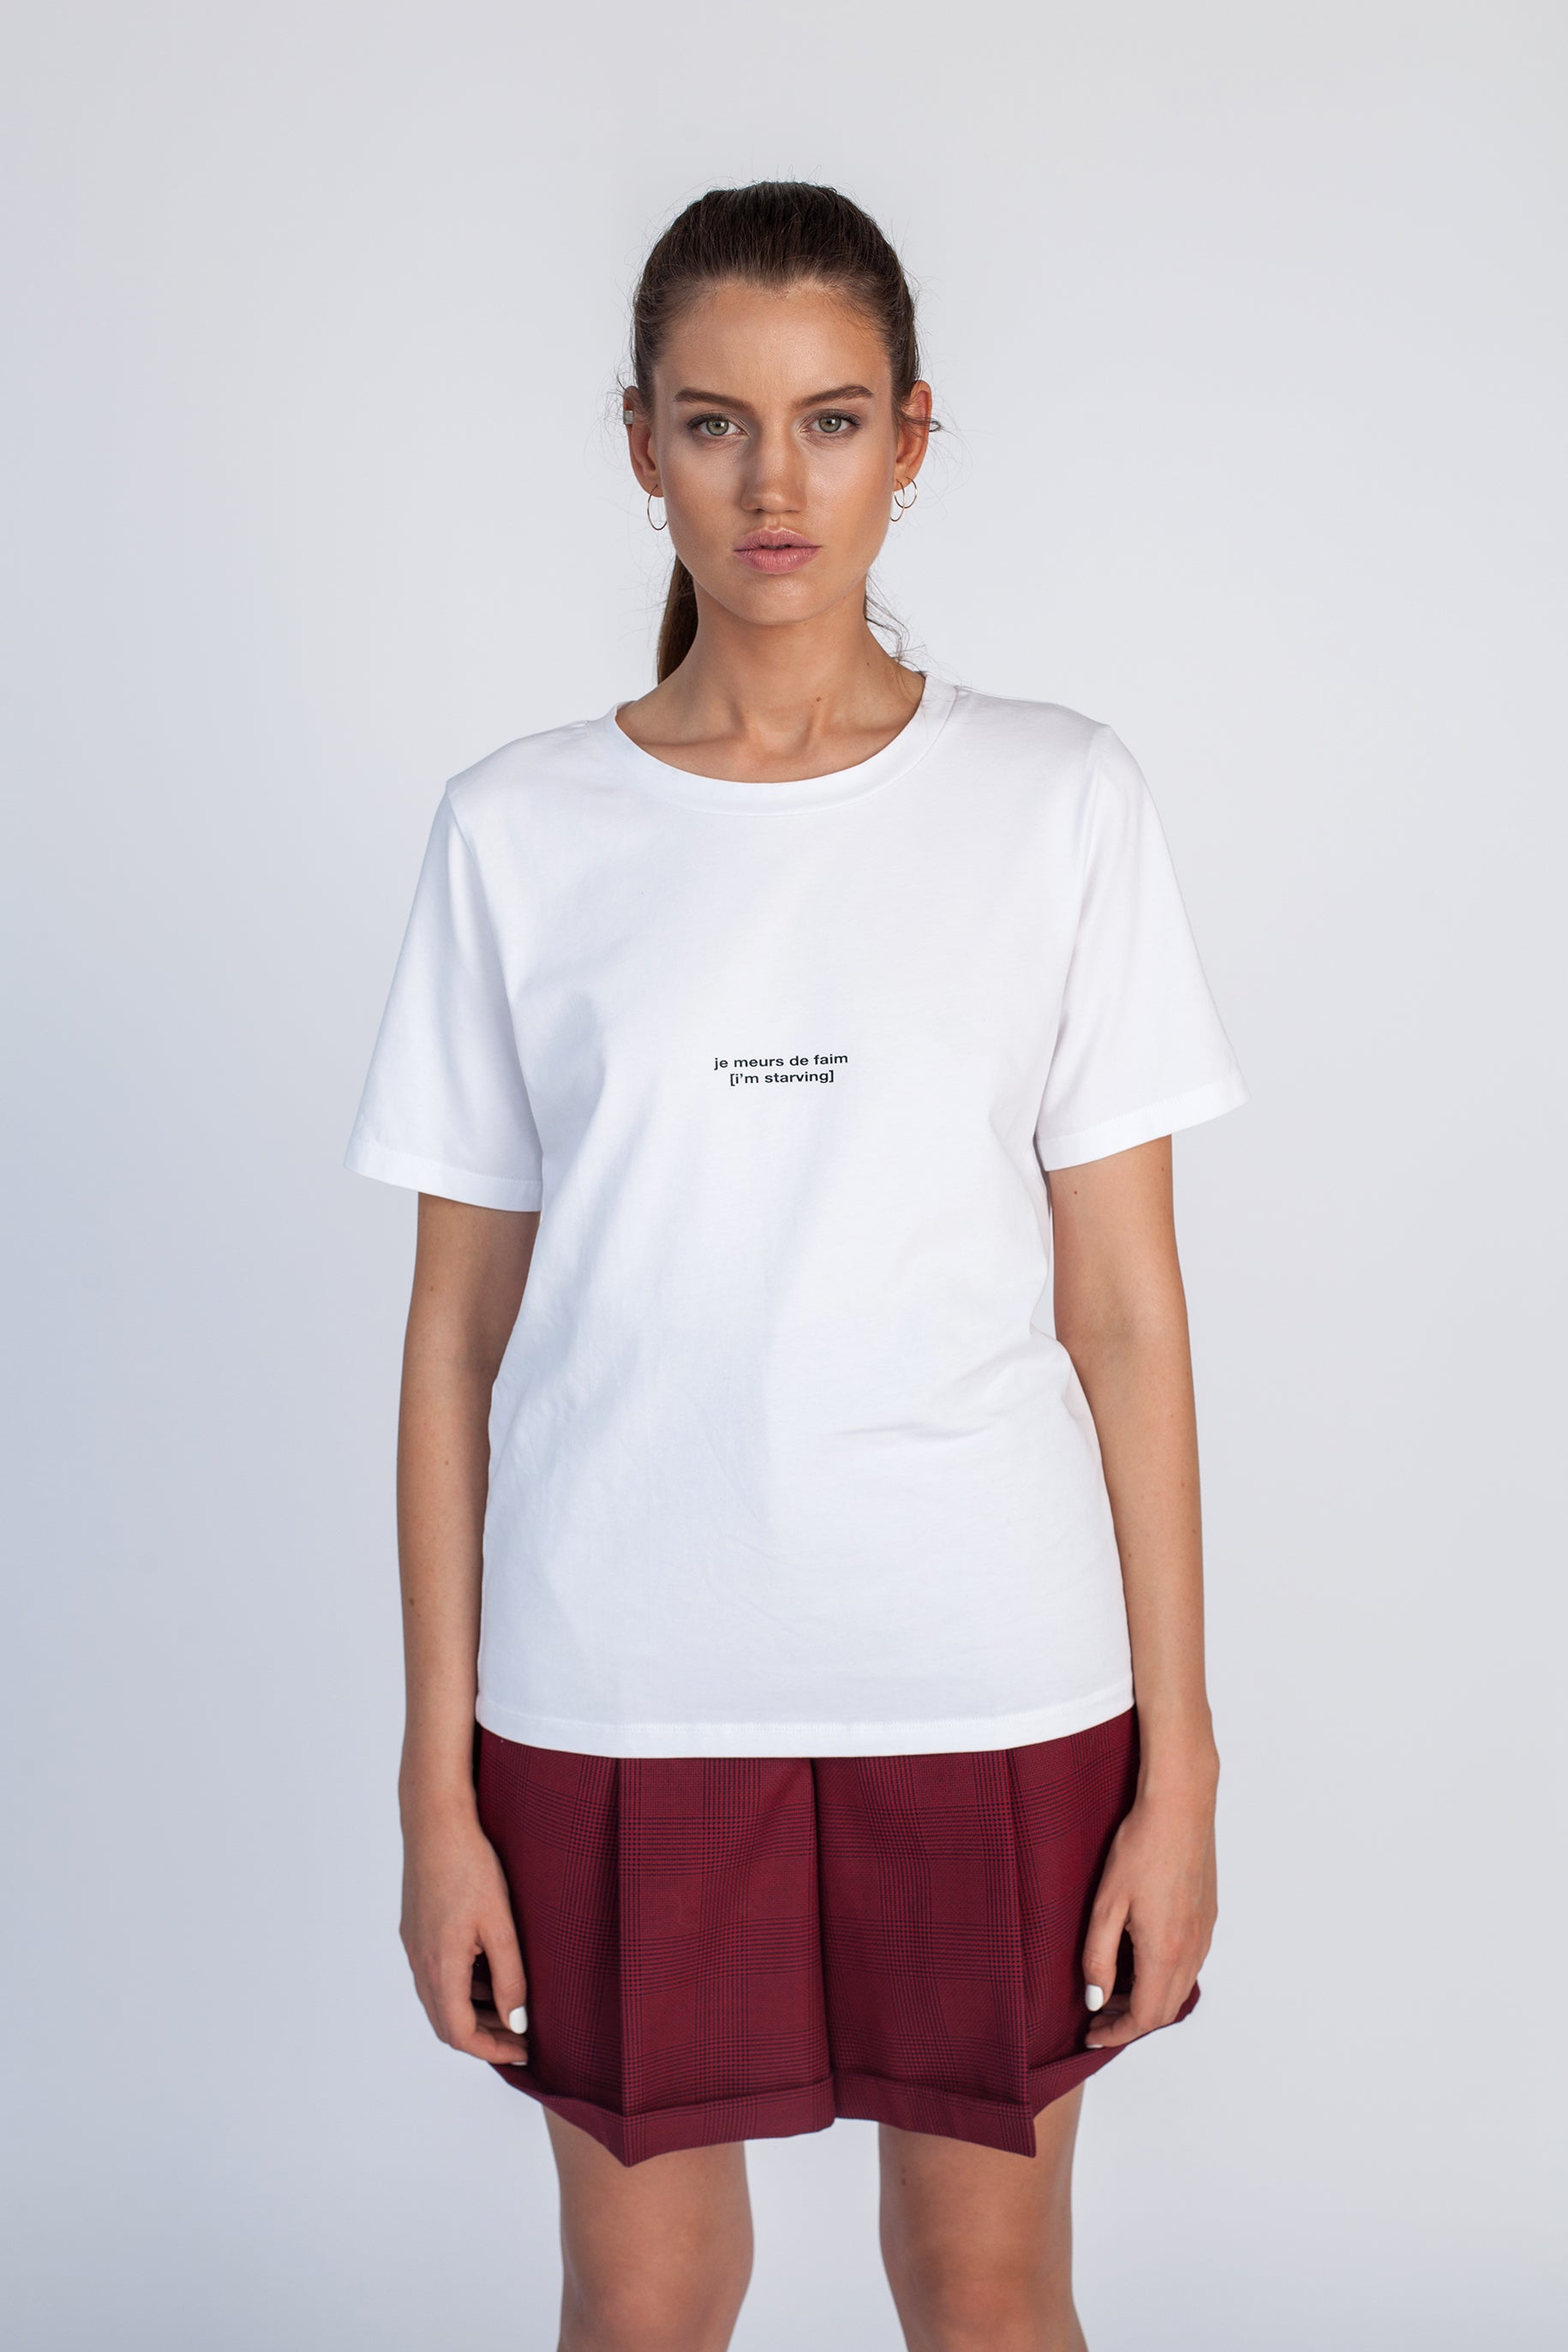 Le SLAP white cotton unisex oversized Starving t-shirt madress